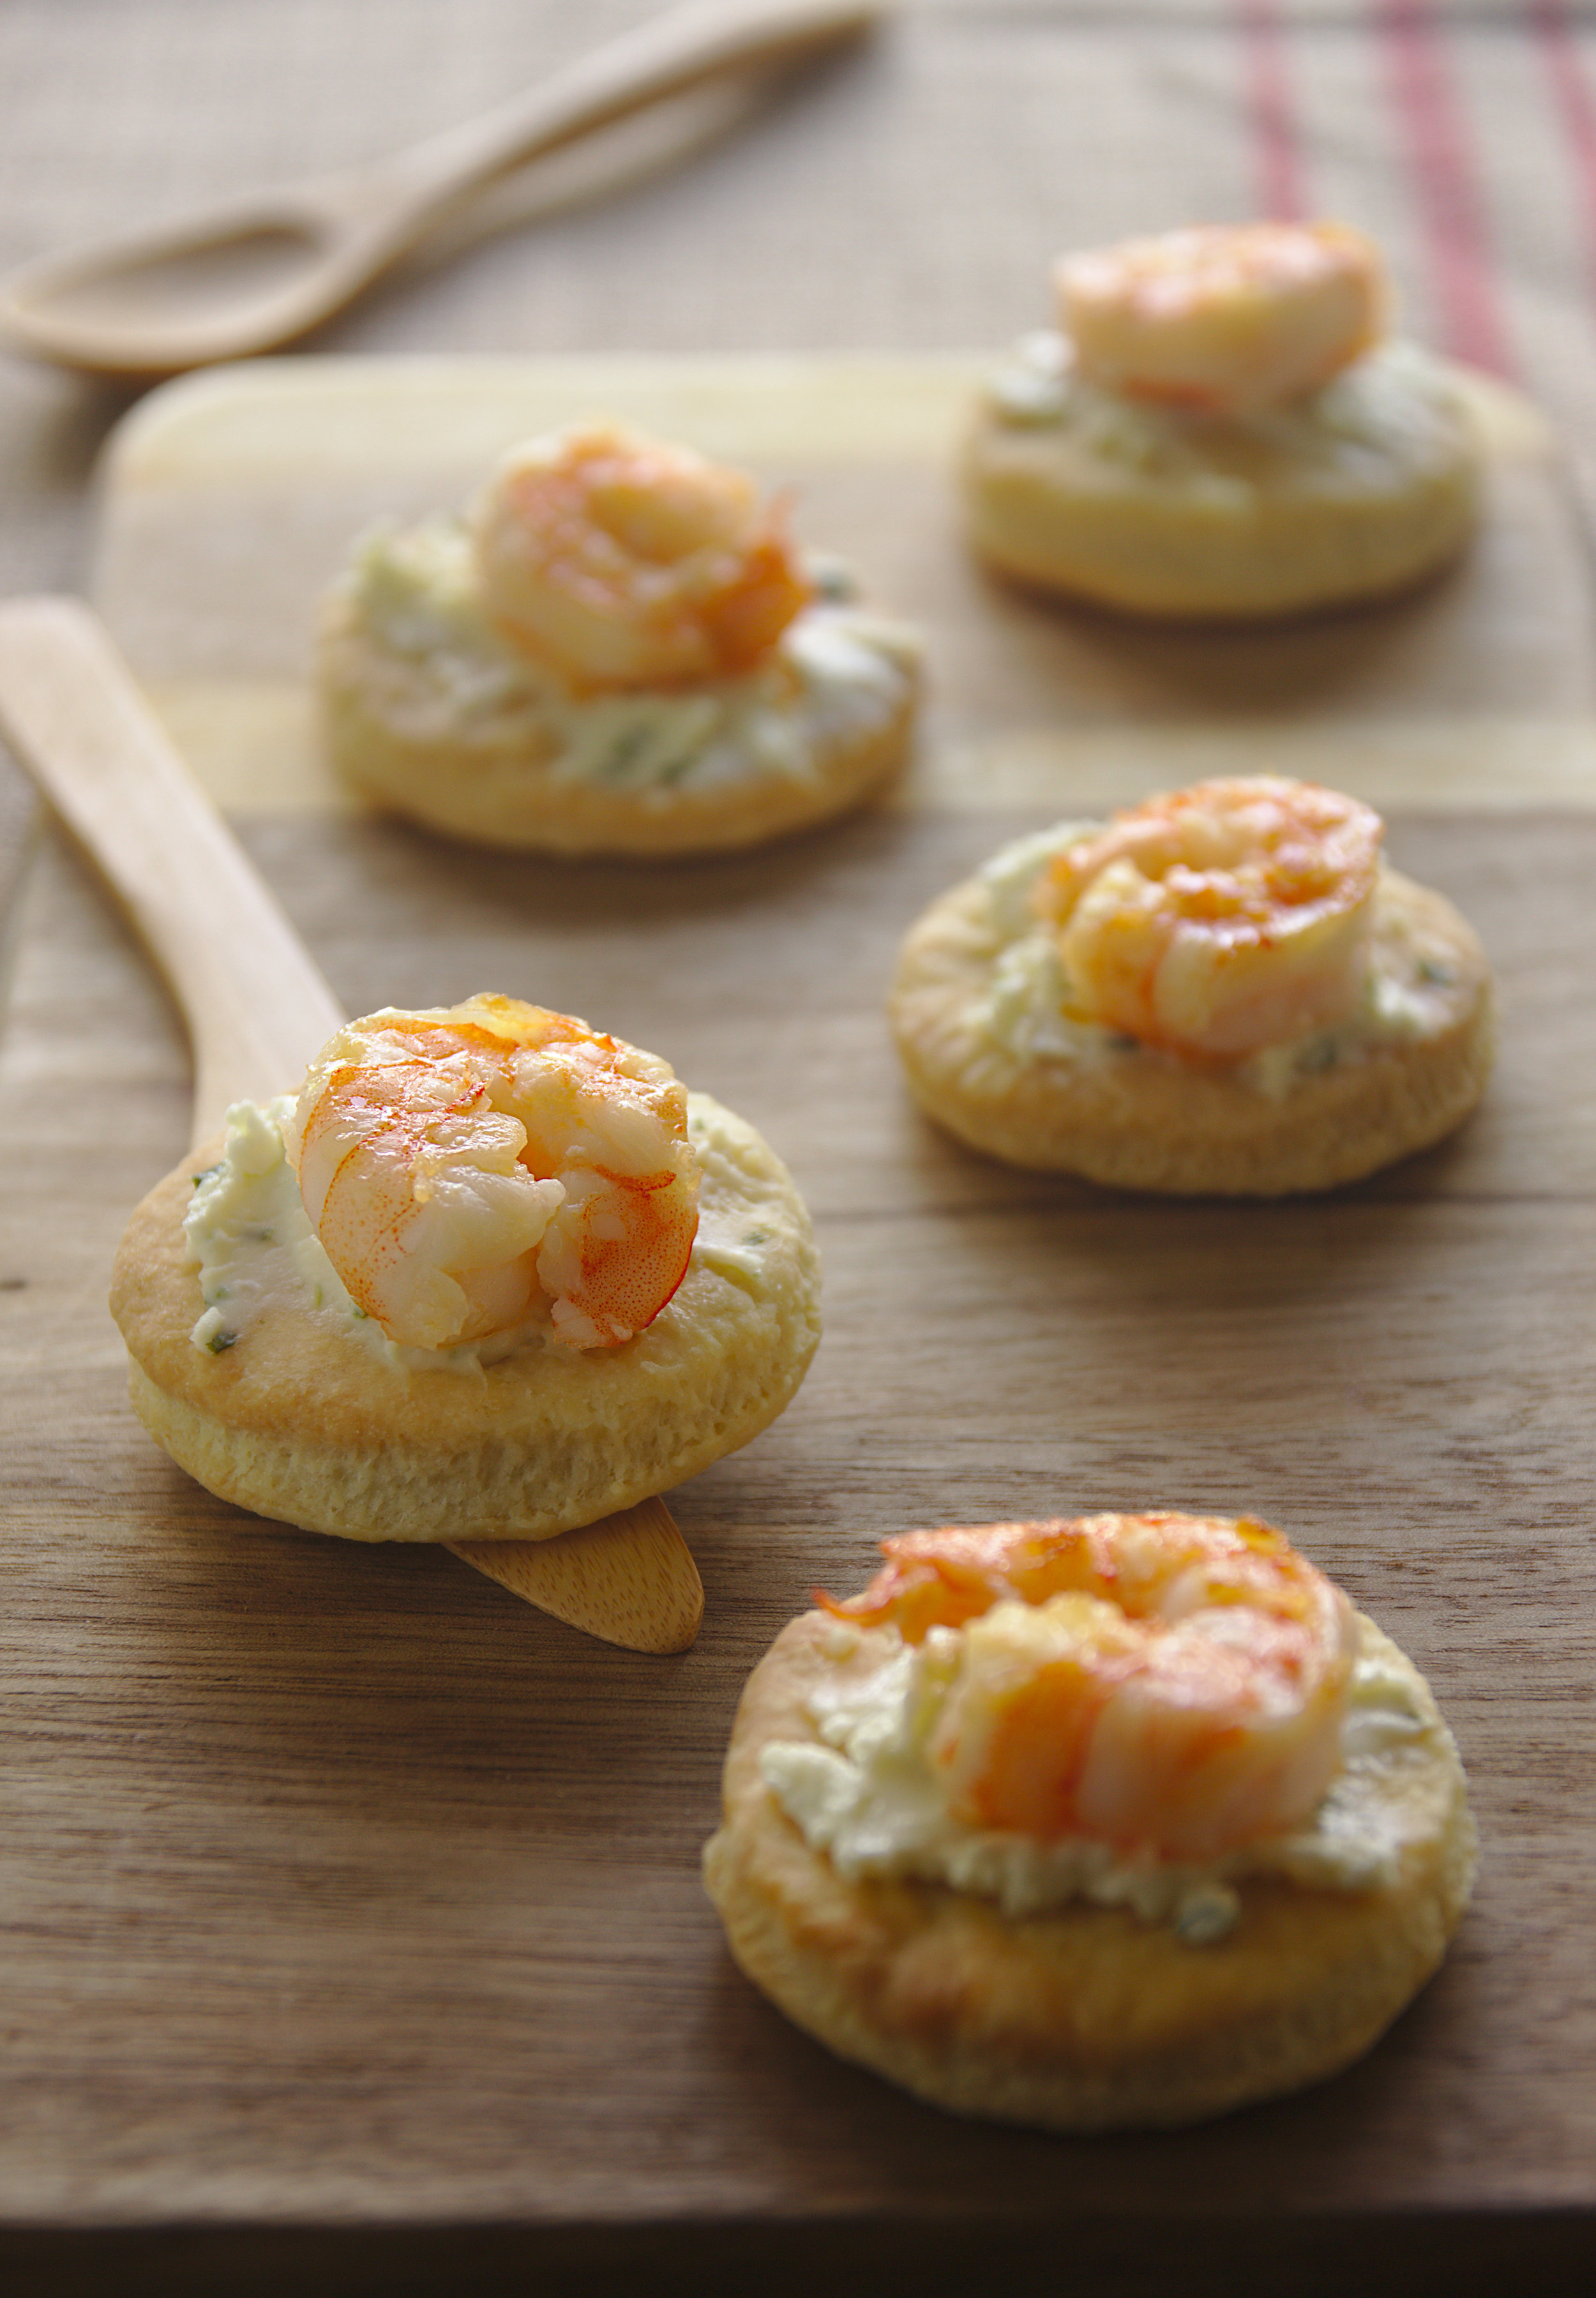 Canapés with shrimps and Pastis